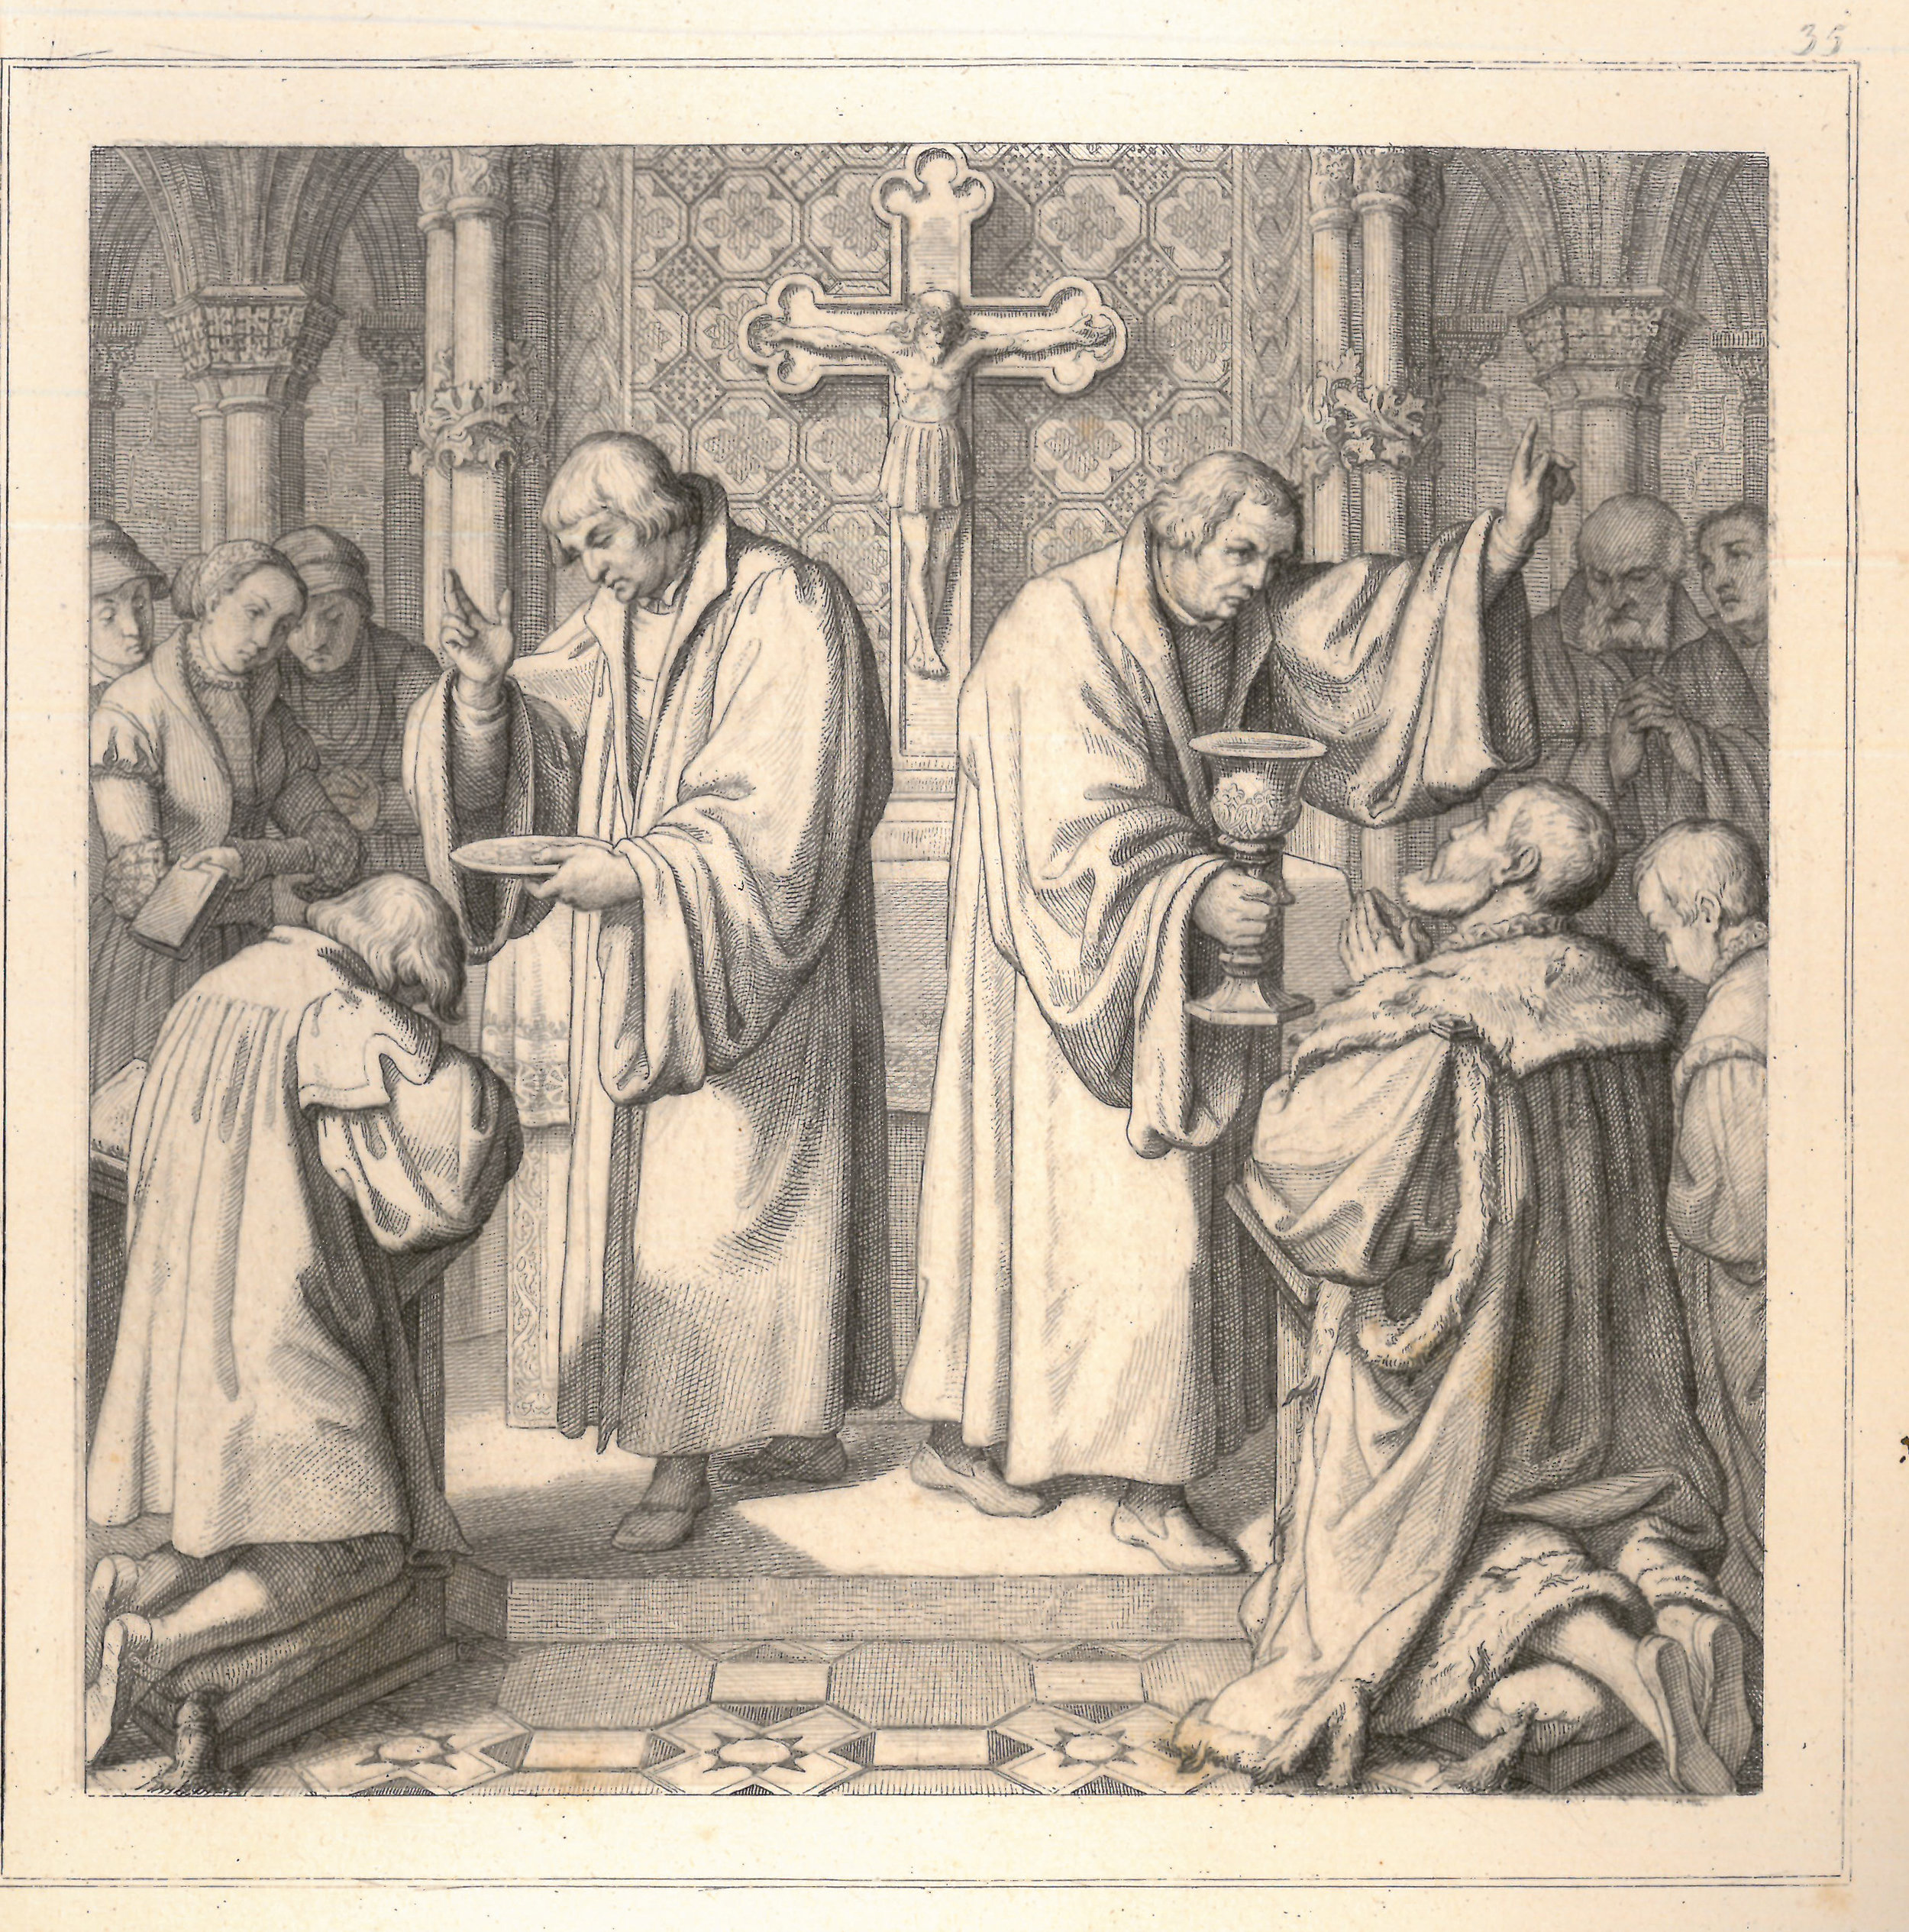 From König, Gustav,  The Life of Luther in Forty-eight Historical Engravings.